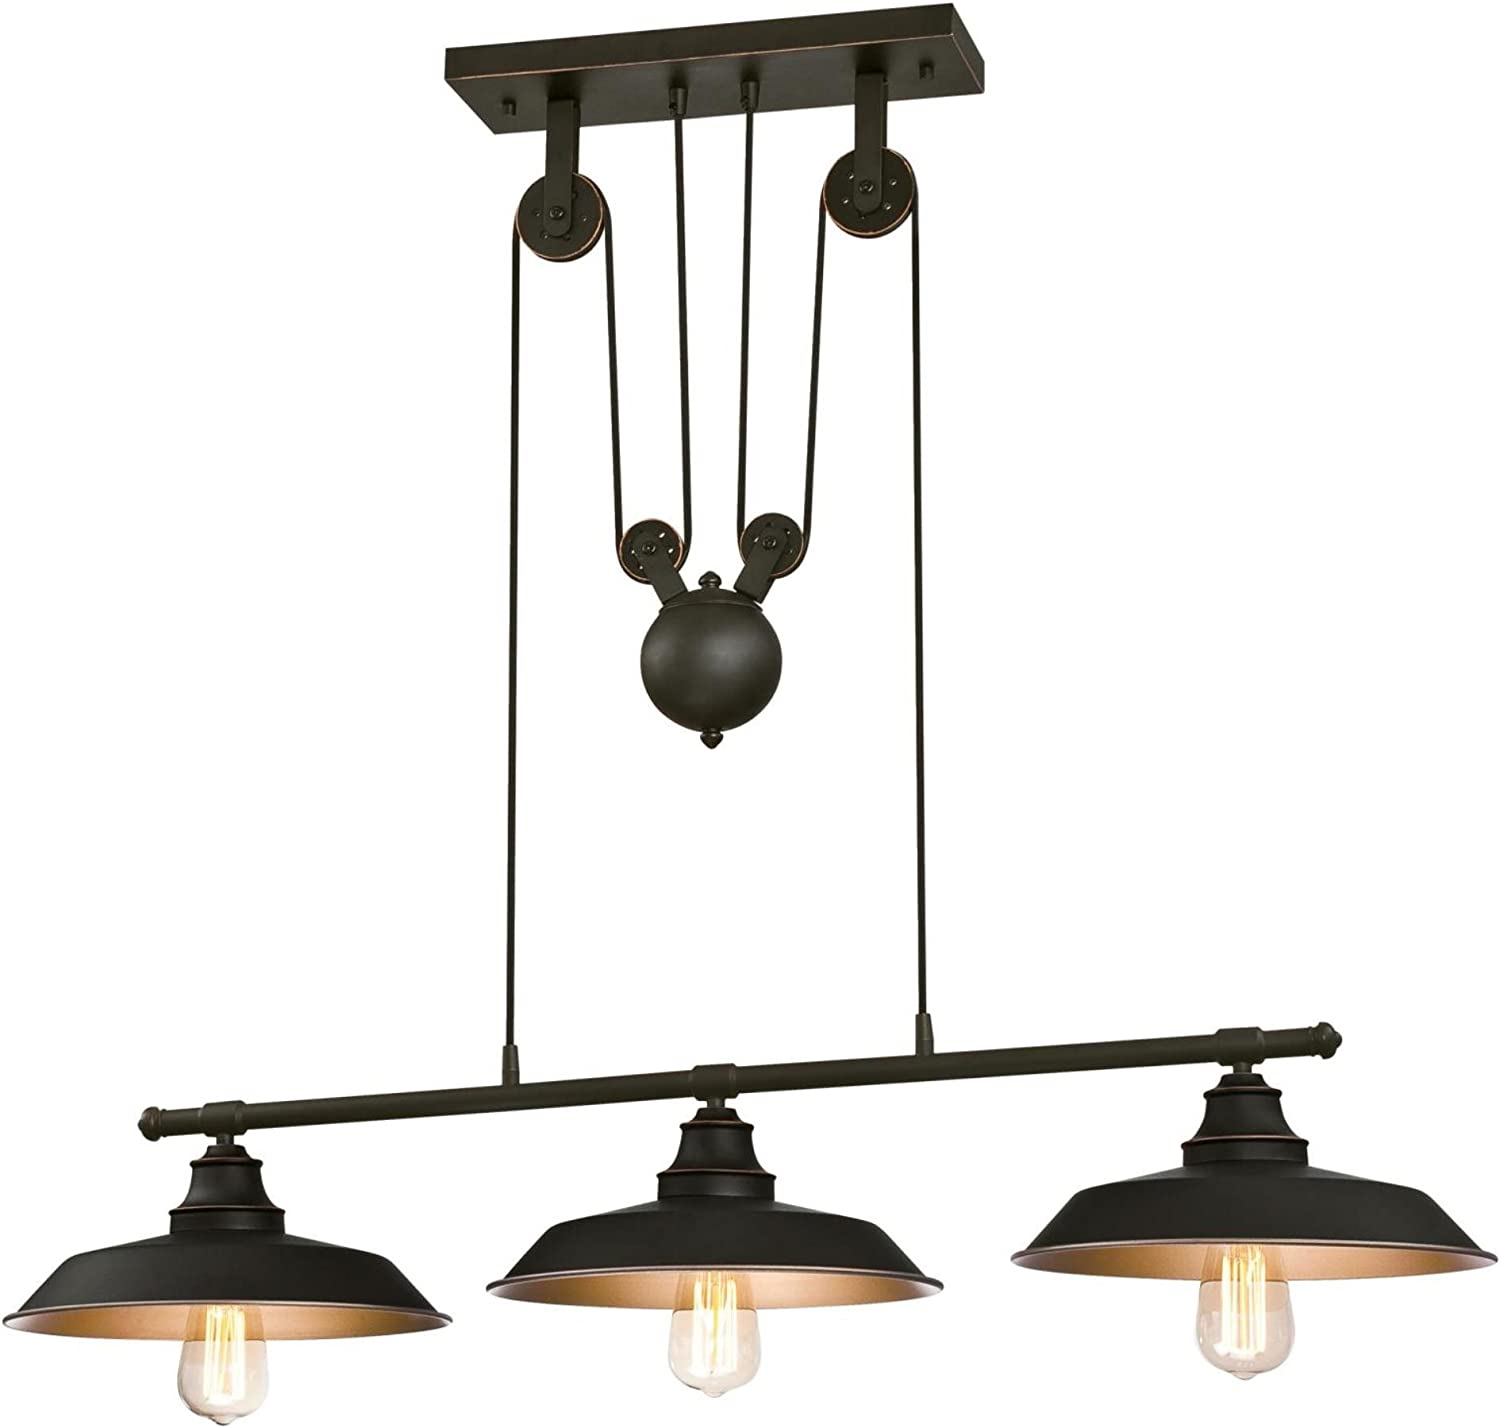 Westinghouse Lighting 6332500 Iron Hill Three-Light Indoor Island Pulley Pendant, Finish with Highlights and Metallic Interior, 3, Oil Rubbed Bronze/Bronze - -